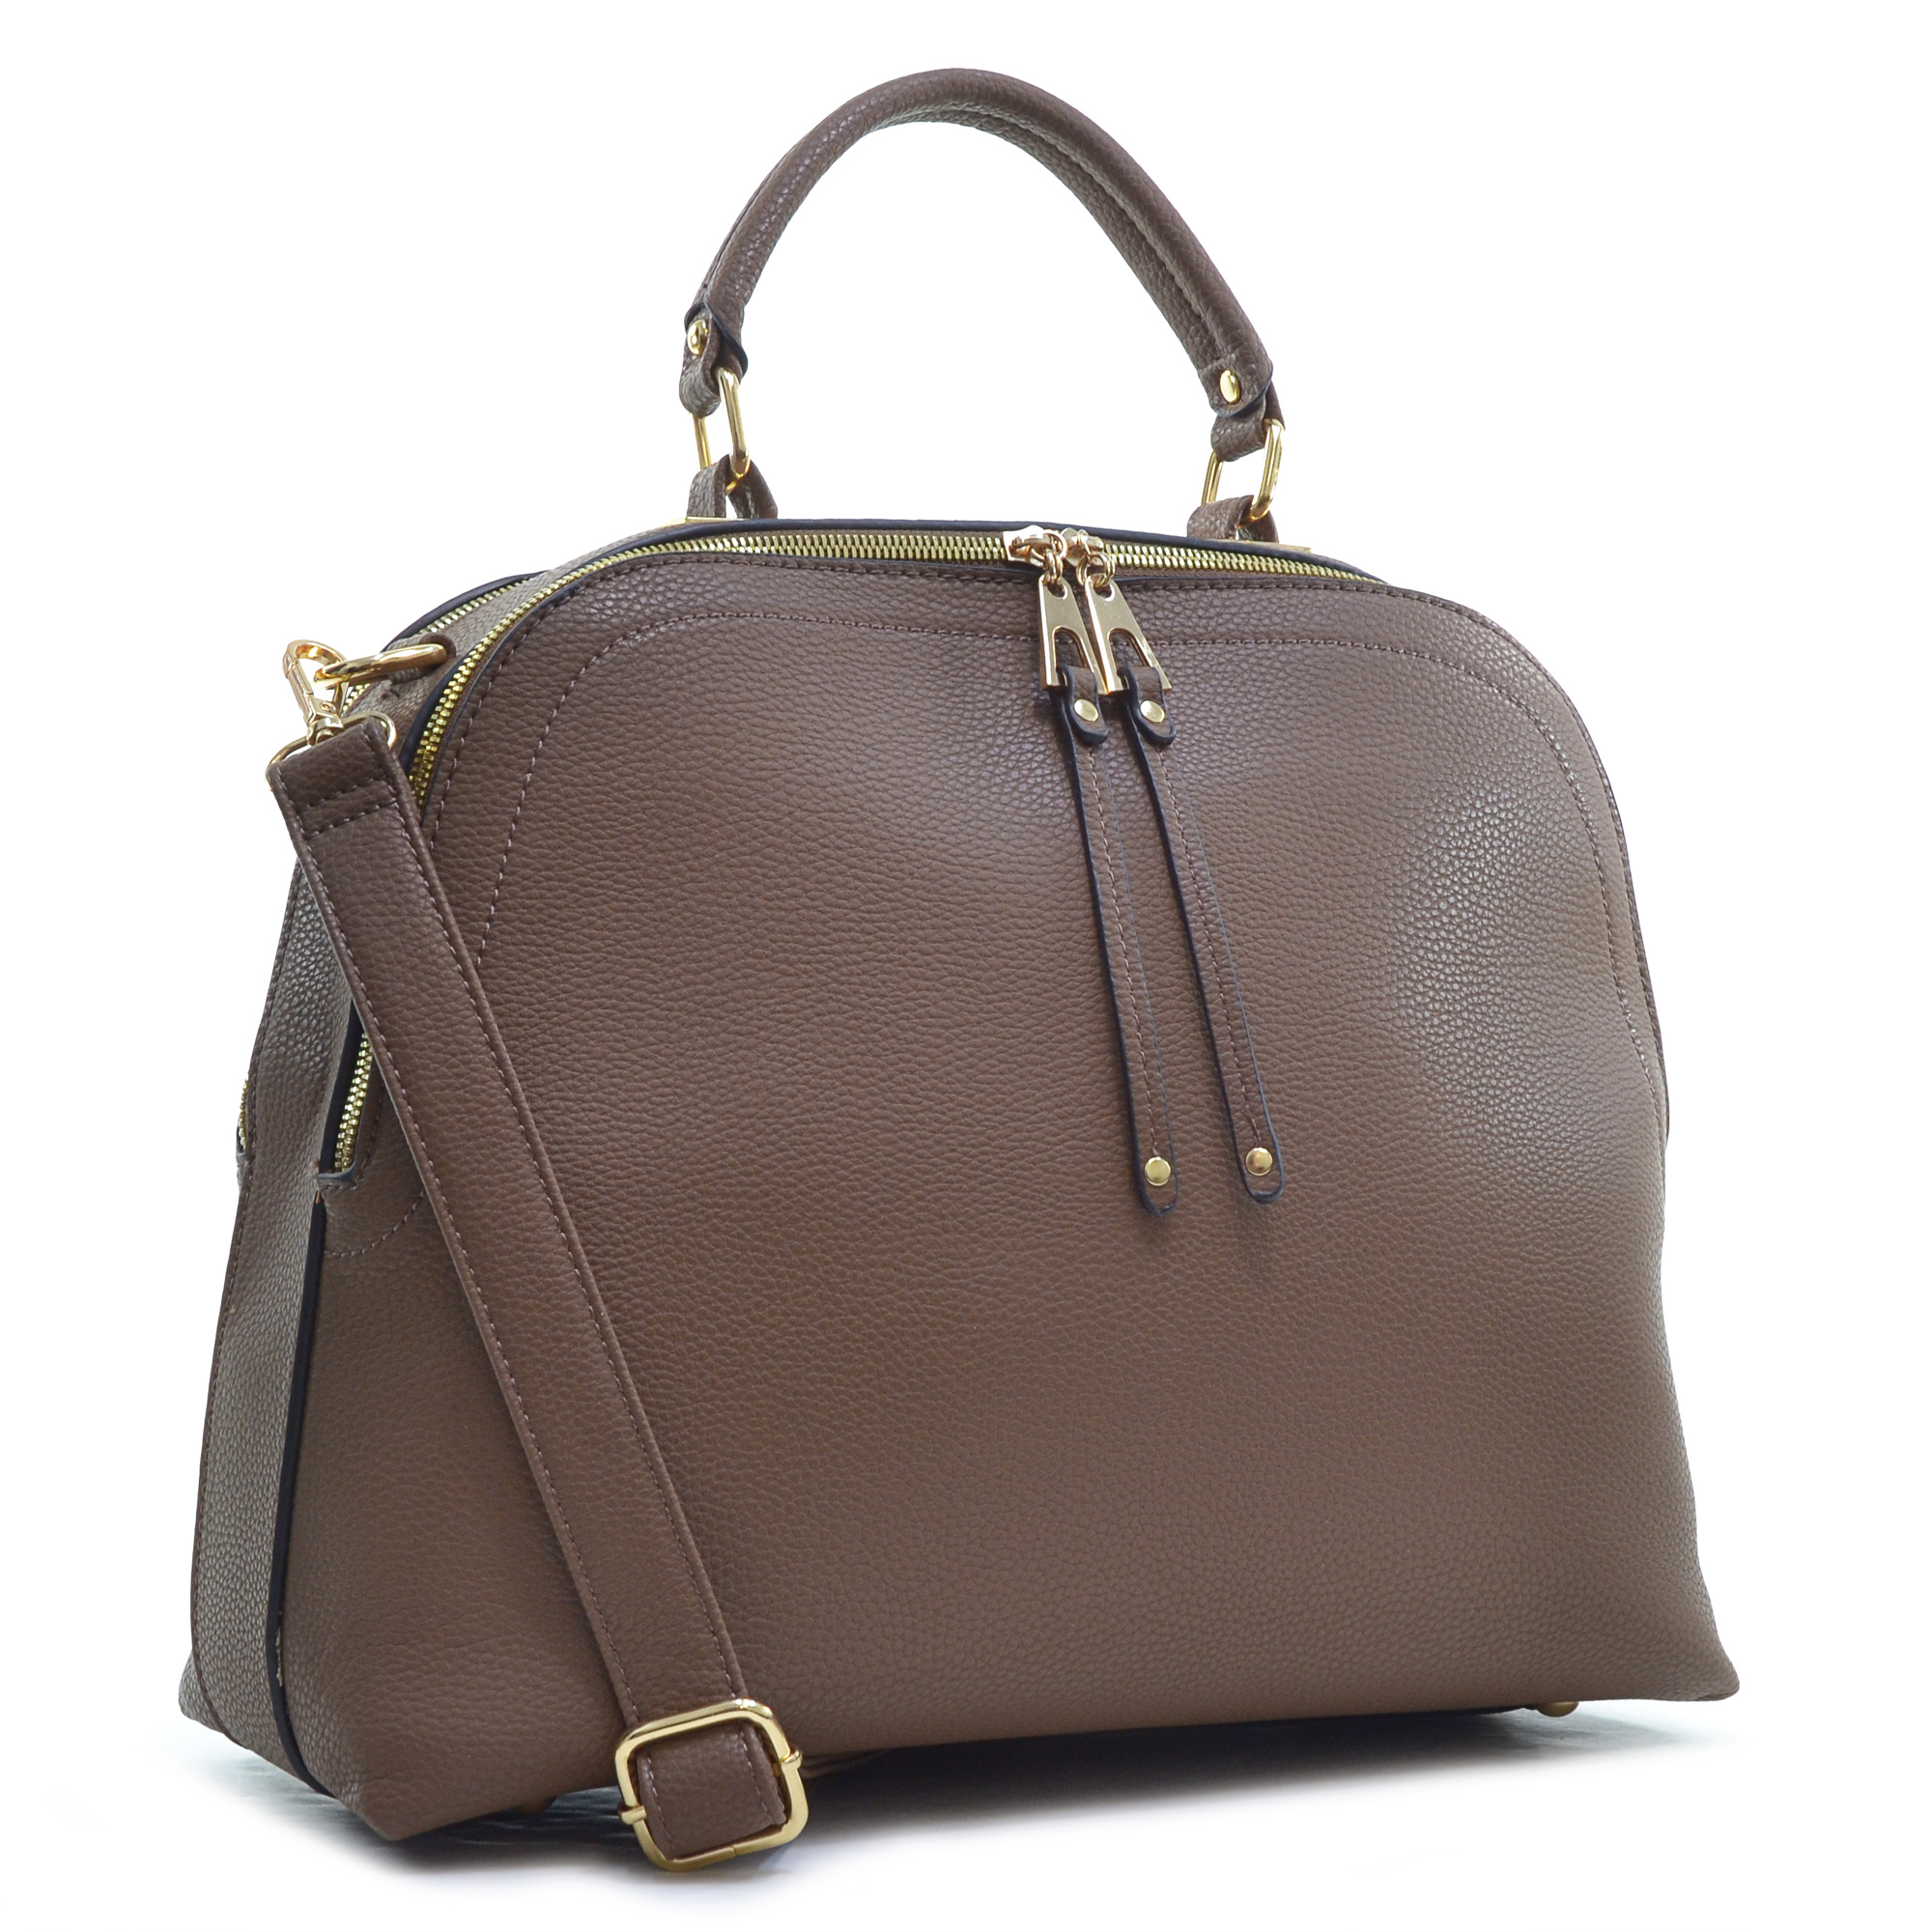 Buffalo Faux Leather Dome Satchel with Shoulder Strap